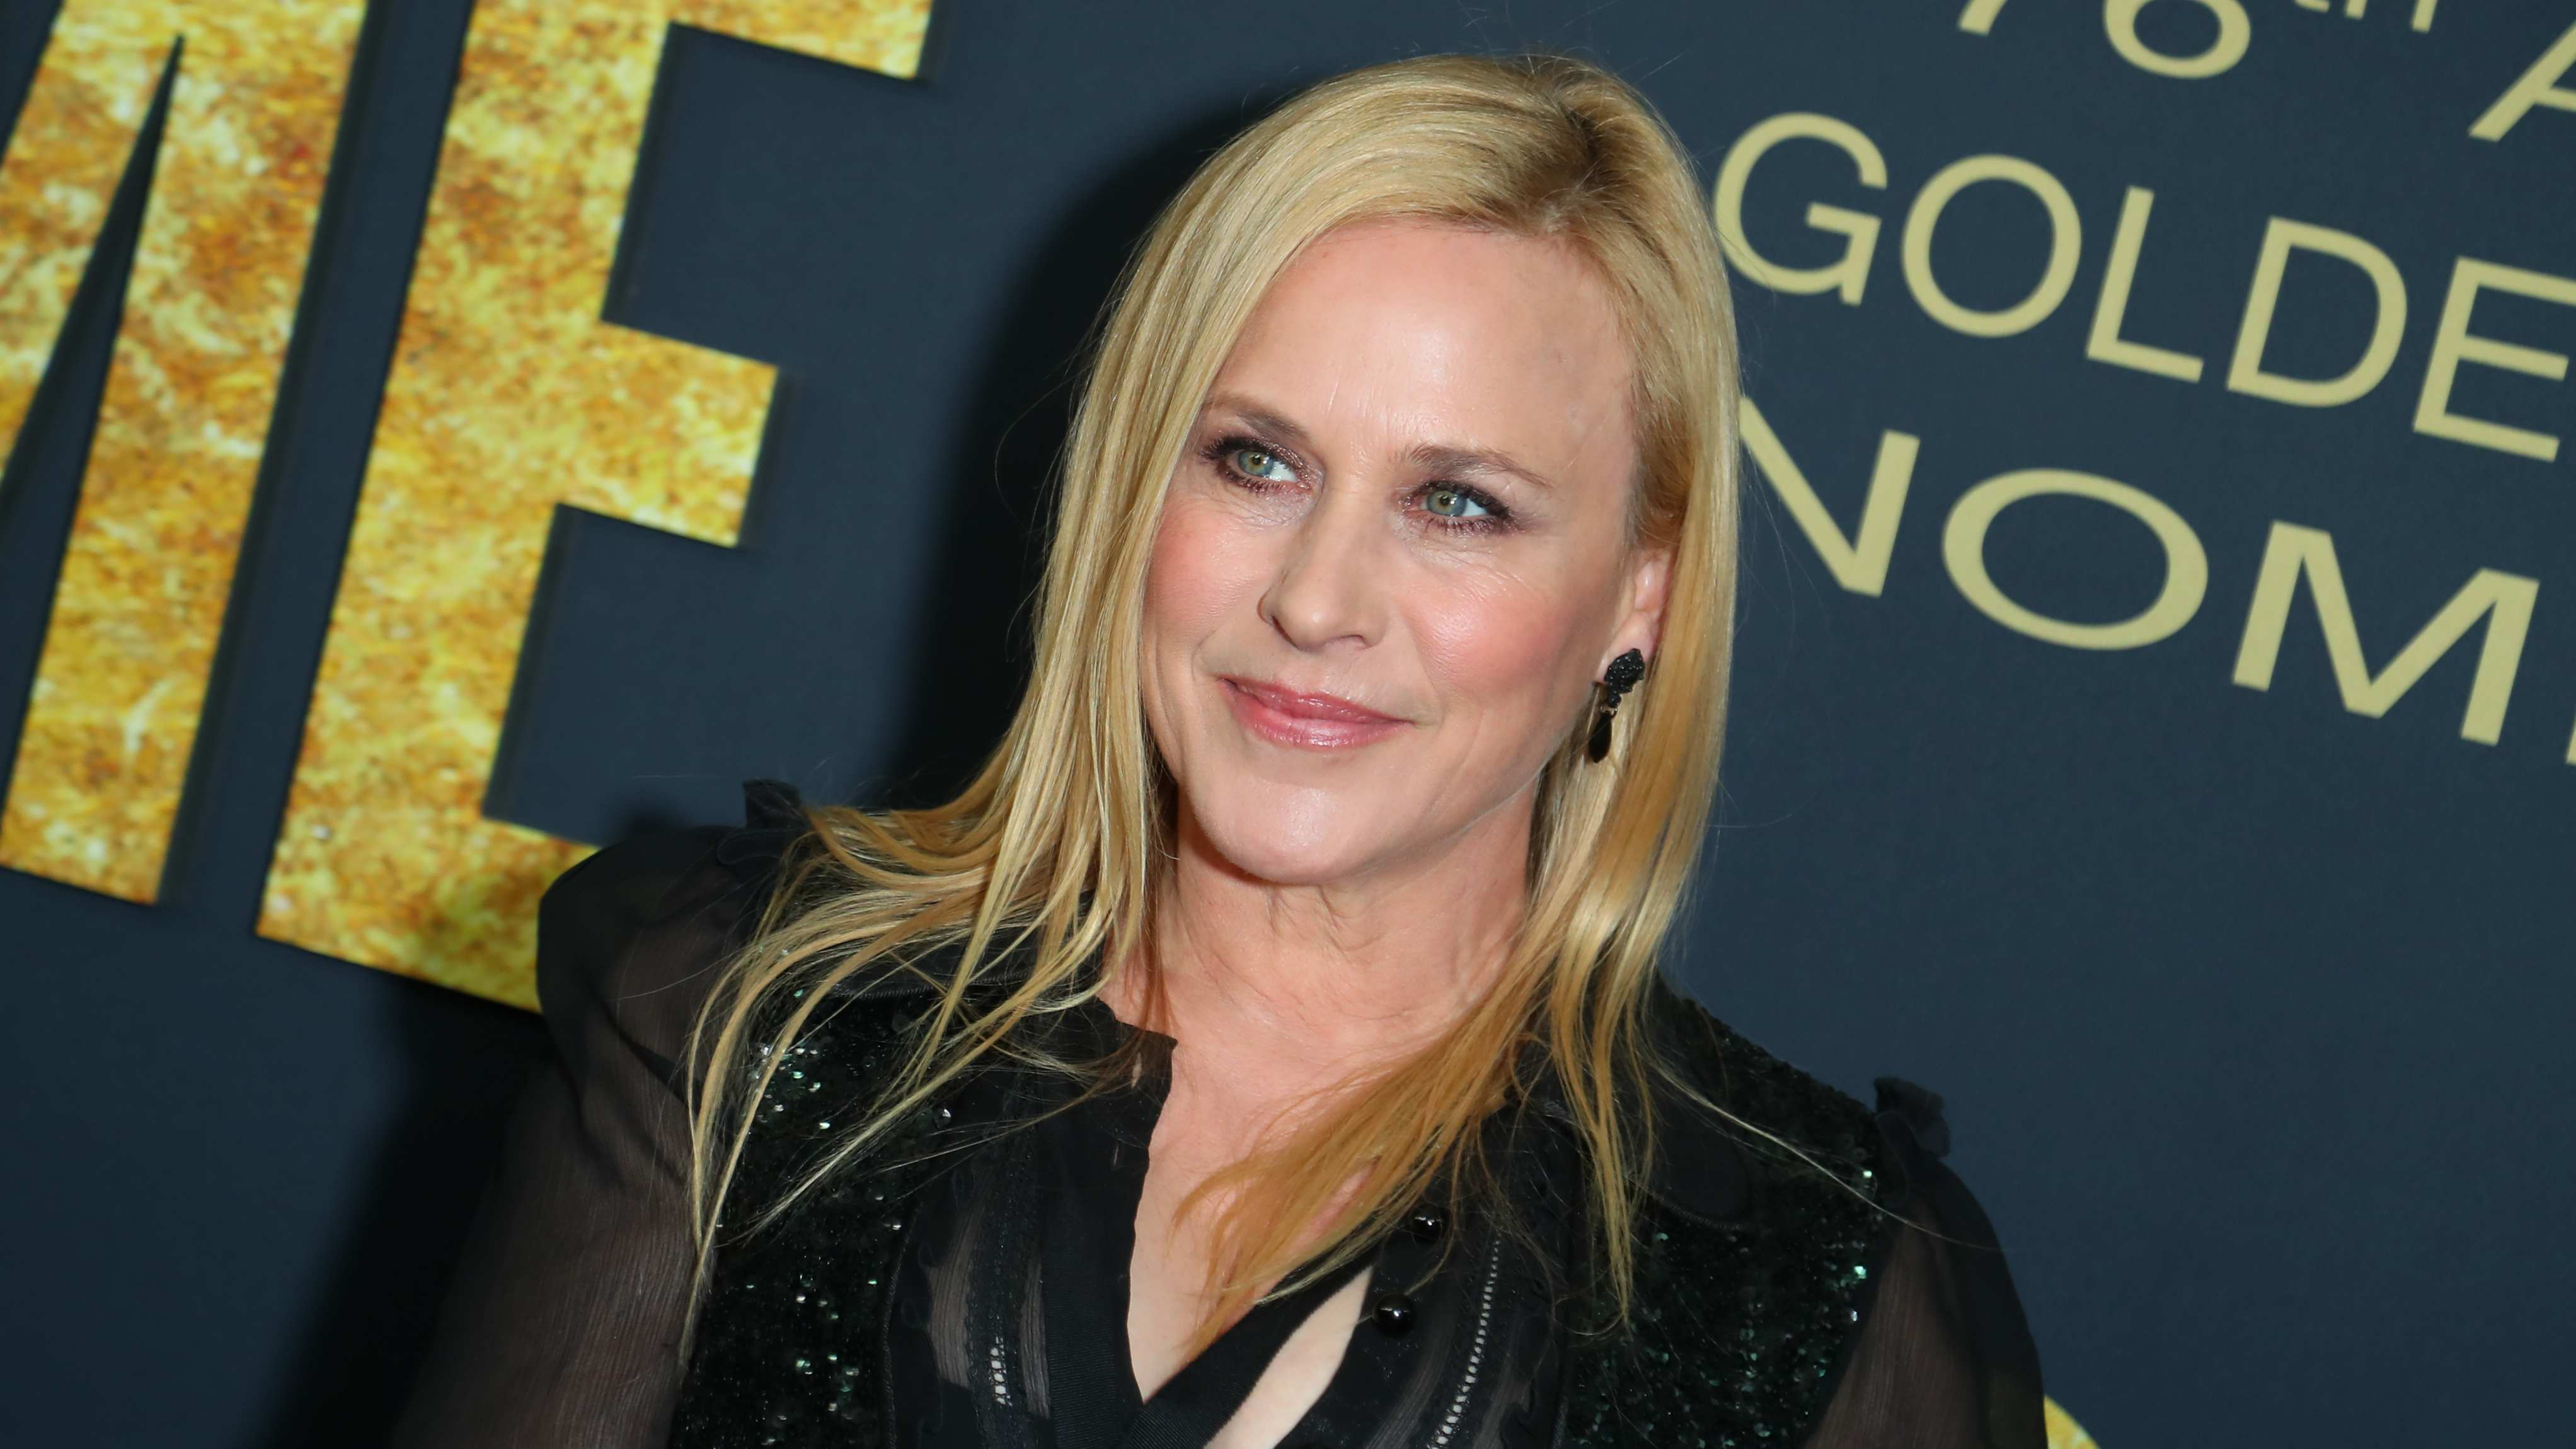 Patricia Arquette Says Her 'Dannemora' Character Has a 'Healthier' View of Sex Than She Does (Exclusive)